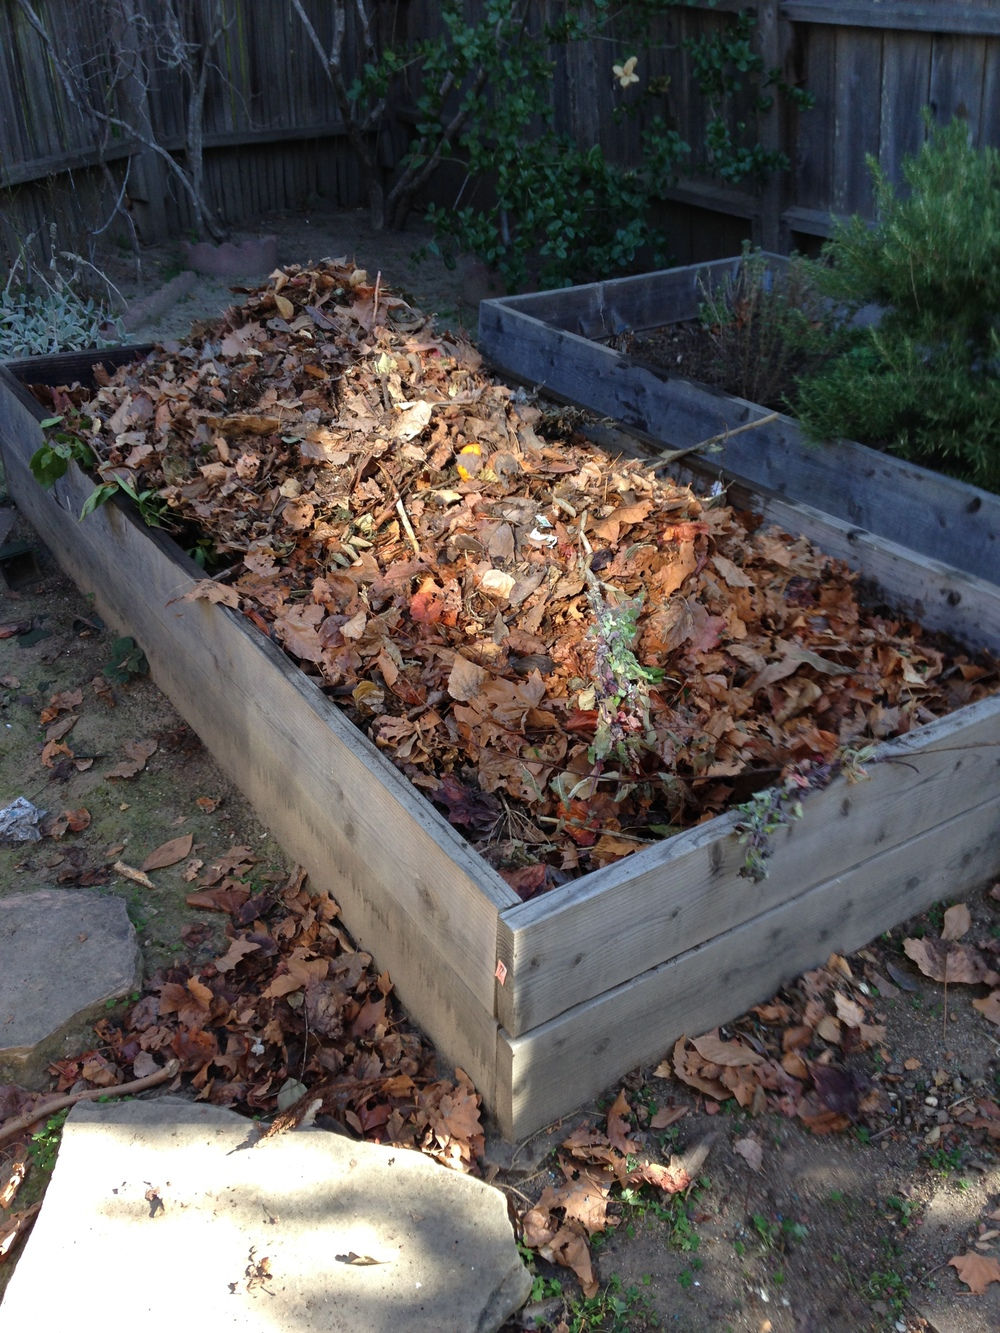 Here's the old garden bed with all the un-decomposed stuff from the compost bin on top. I watered it deeply and now we wait. Although most likely I'll be turning this one instead of being lazy as usual.